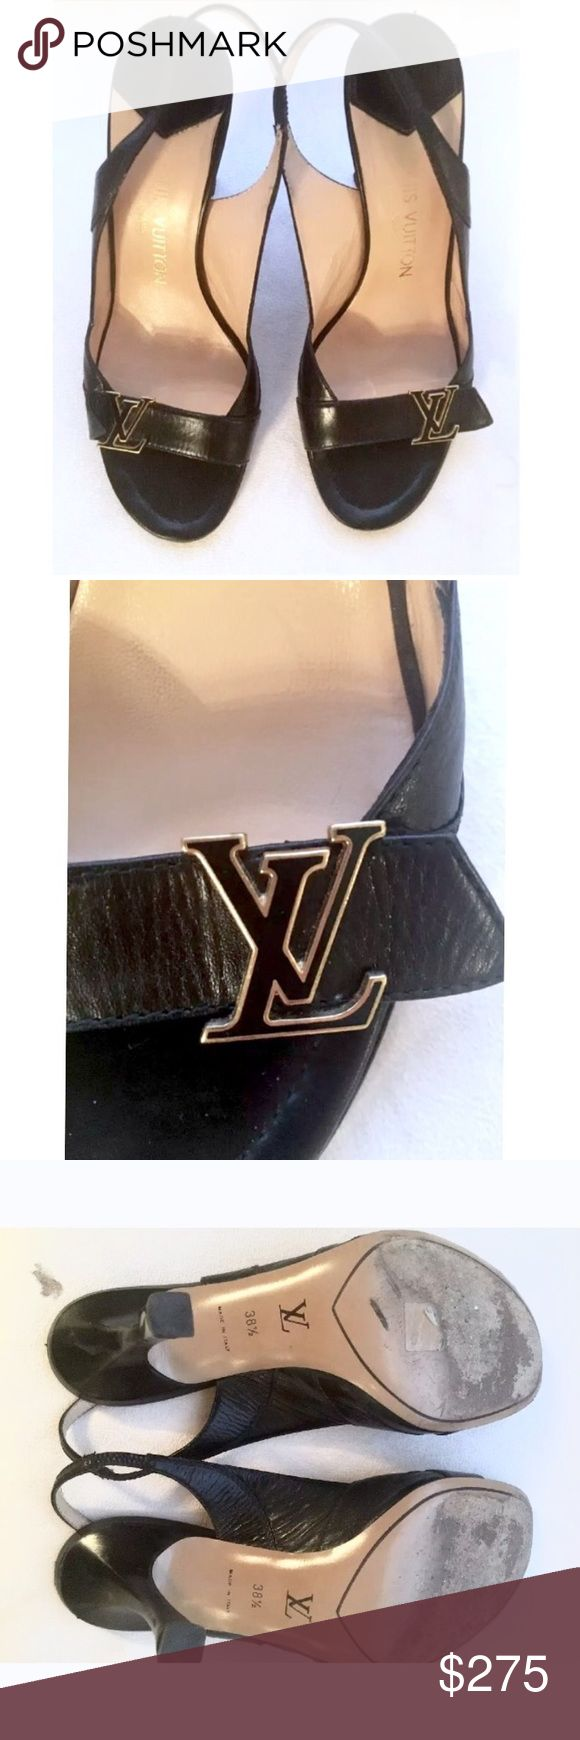 LOUIS VUITTON leather slingebacks  LV logo Sz8.5 Stylish LOUIS VUITTONS slingebacks with LV logo on front strap. Only wear is on the bottom soles and  some of the lettering has worn off. Great buy! Louis Vuitton Shoes Heels